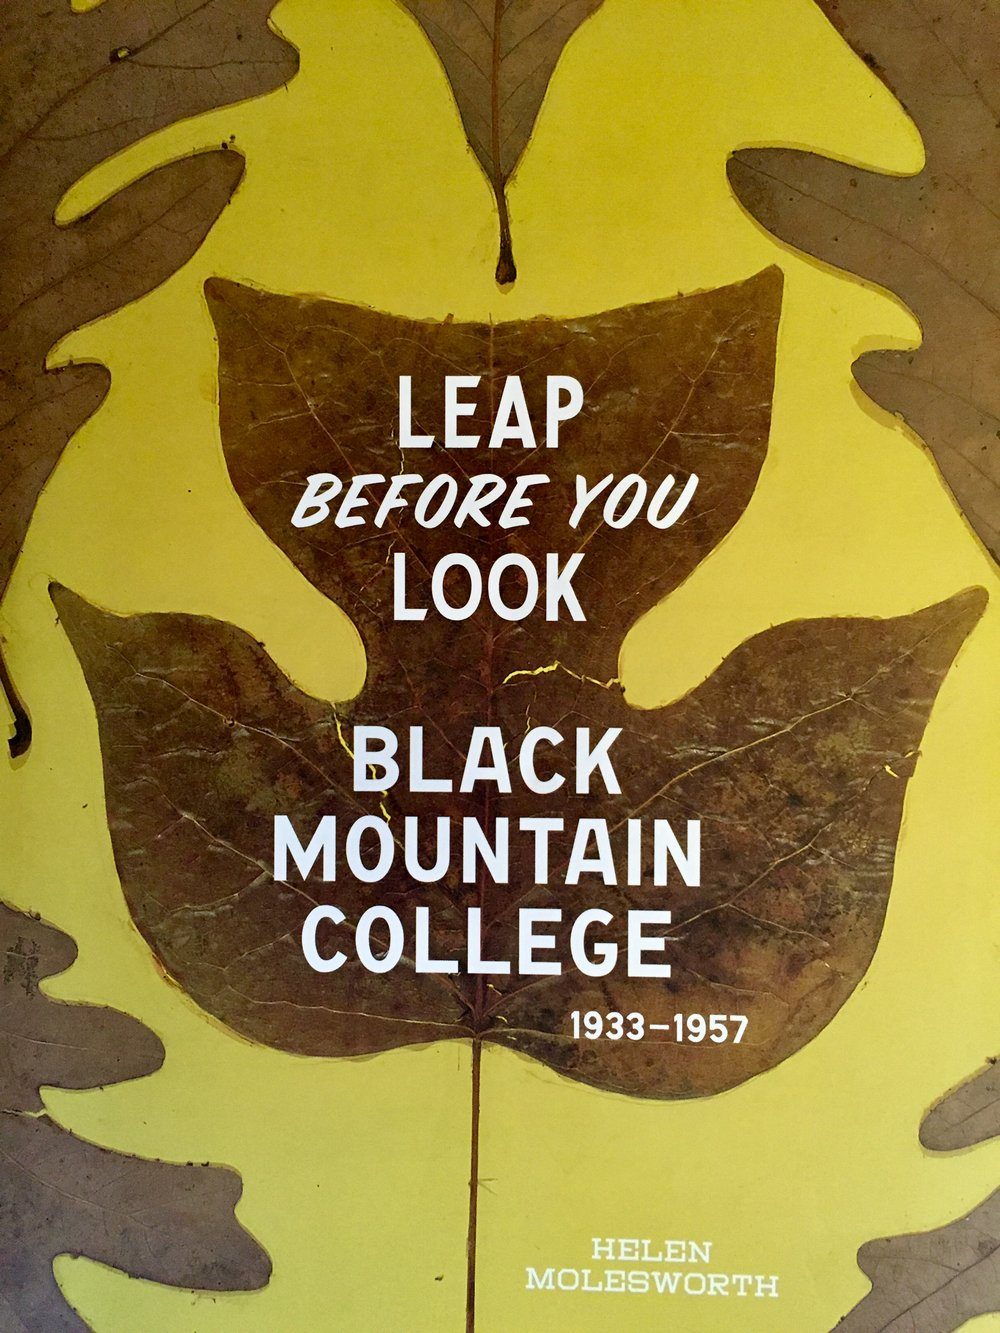 Leap Before You Look: Black Mountain College 1933-1957 by Helen Molesworth, Yale University Press 2015